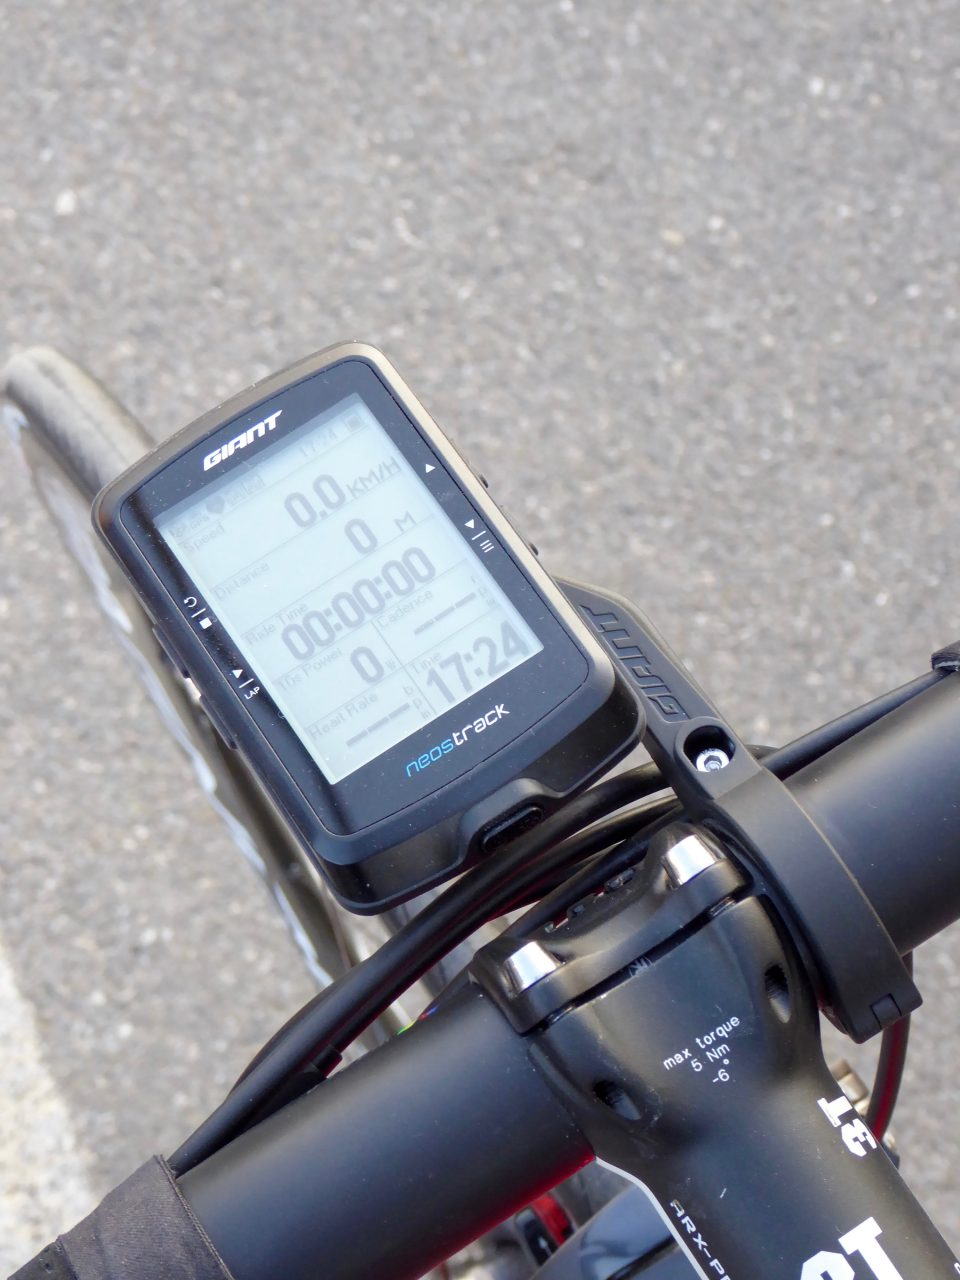 Giant Neos Track, ciclocomputer GPS